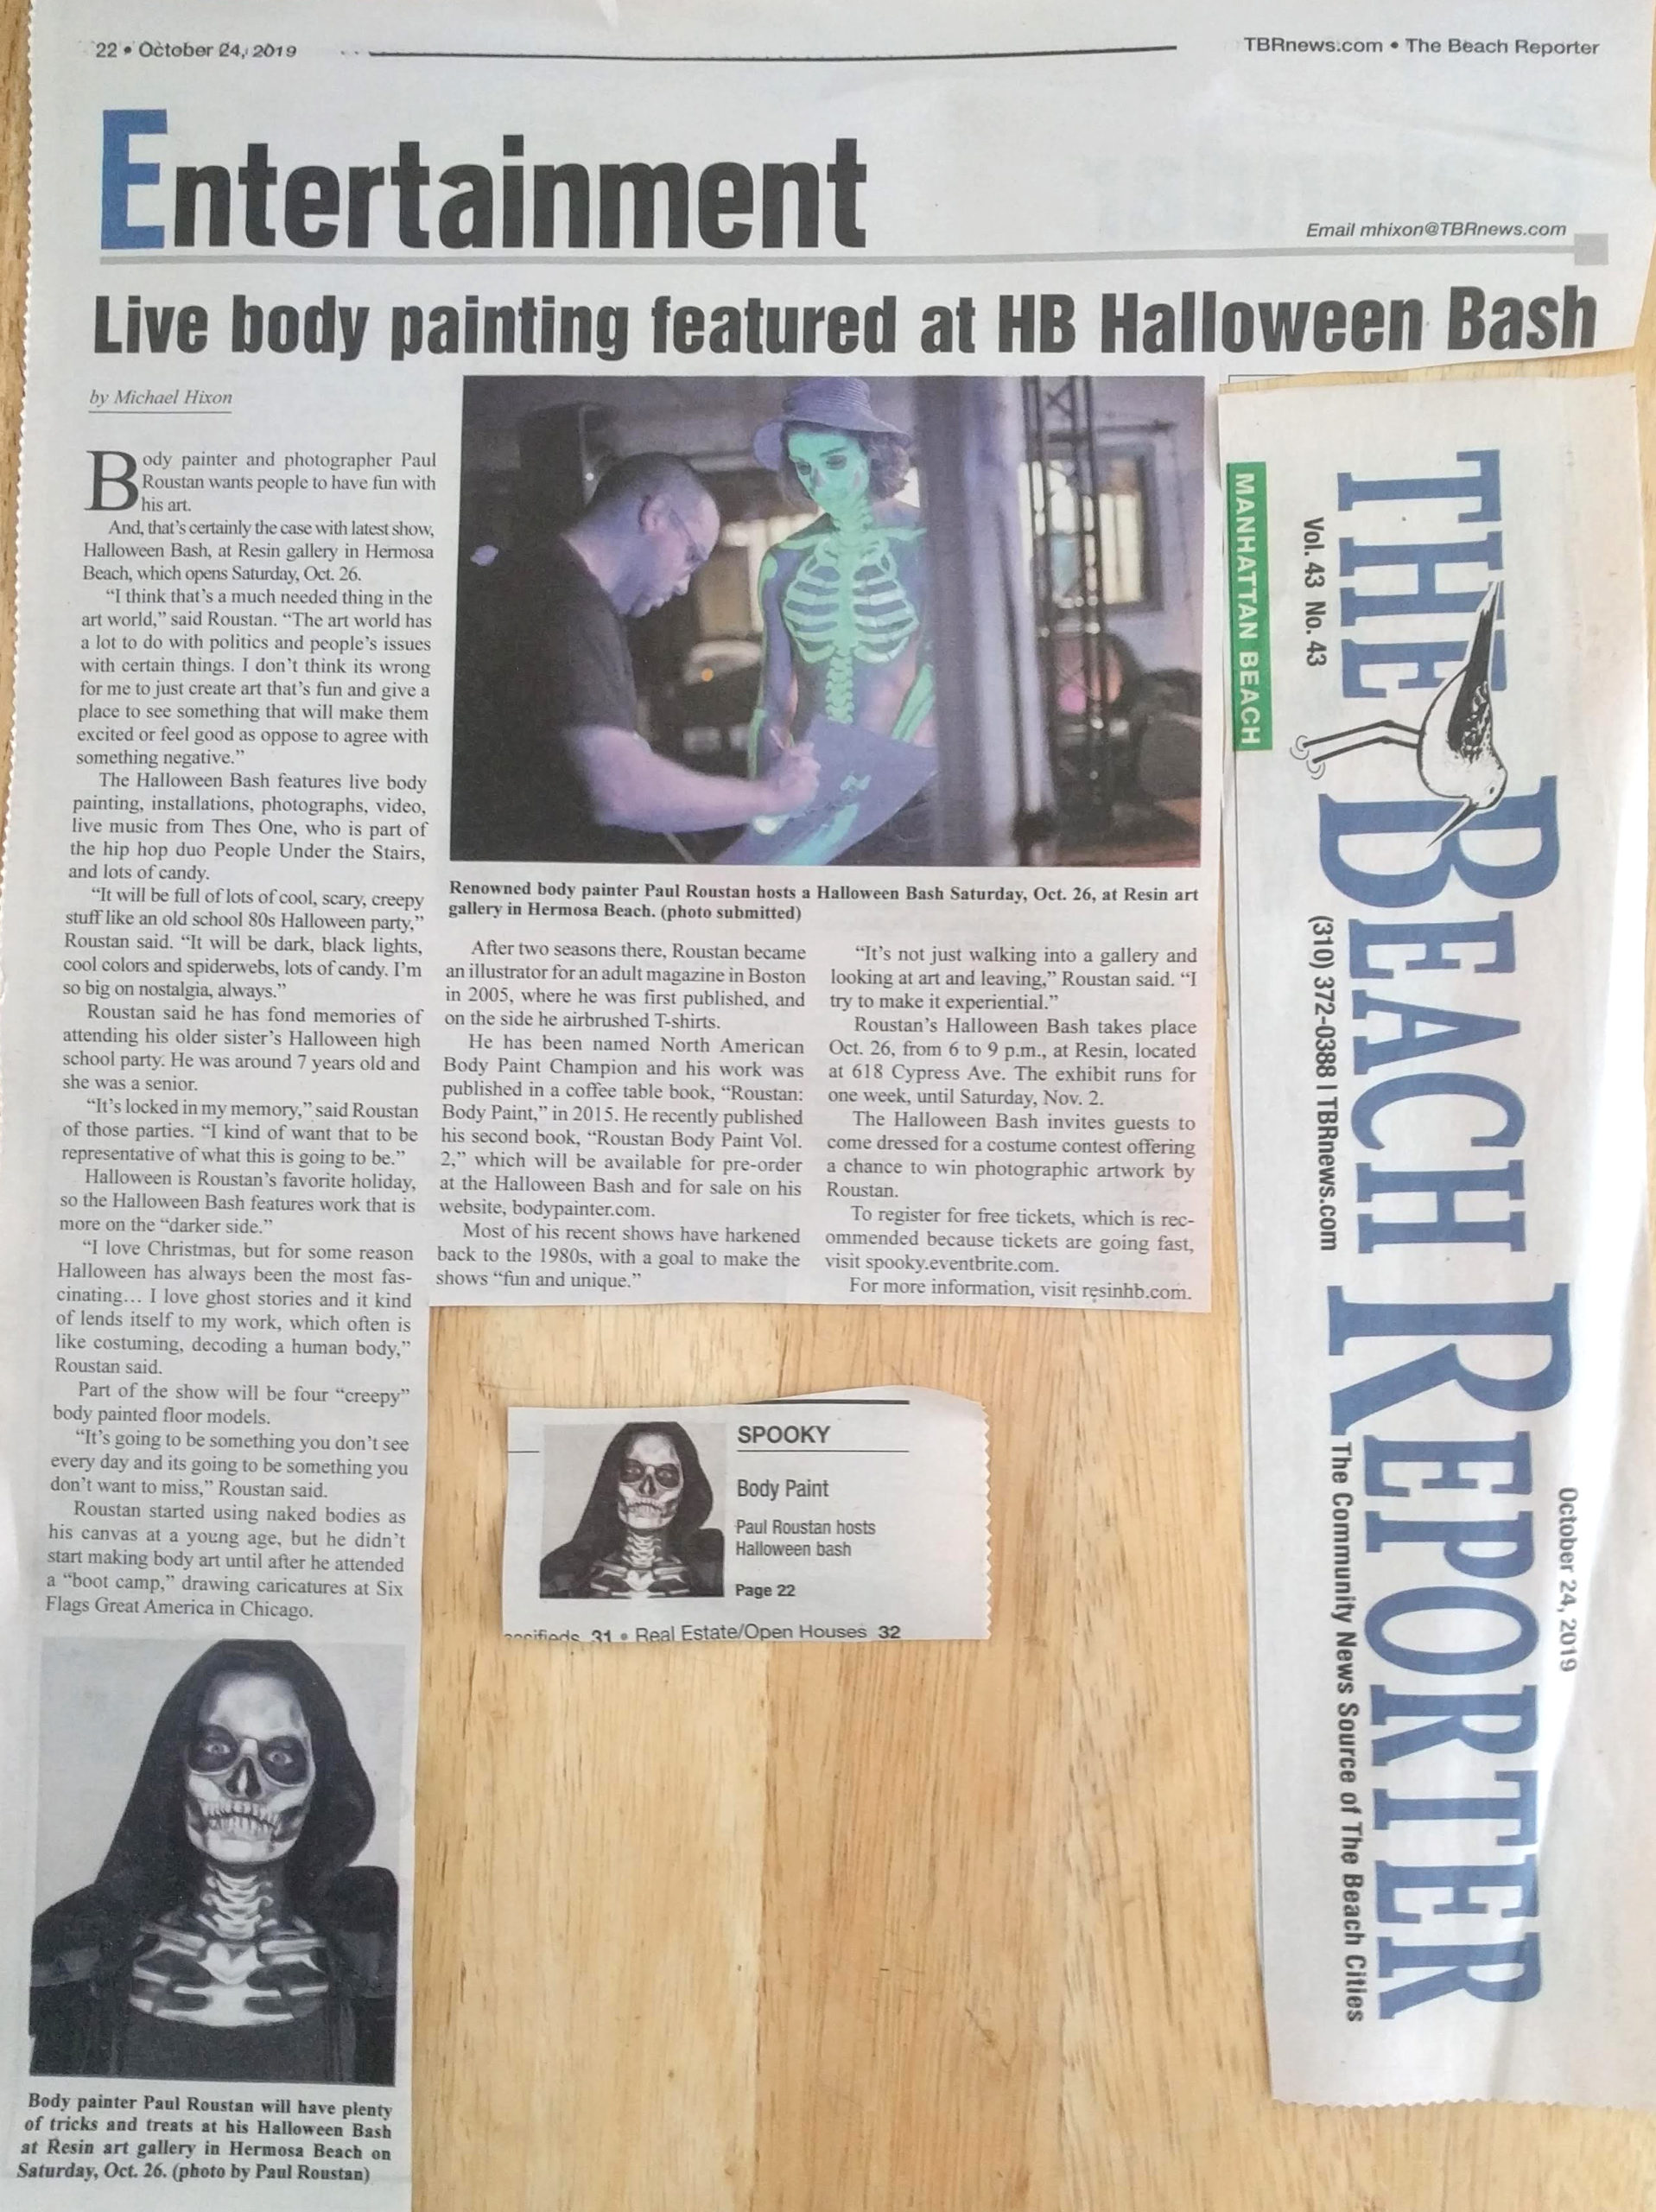 Paul Roustan Halloween Bash Feature in the Beach Reporter